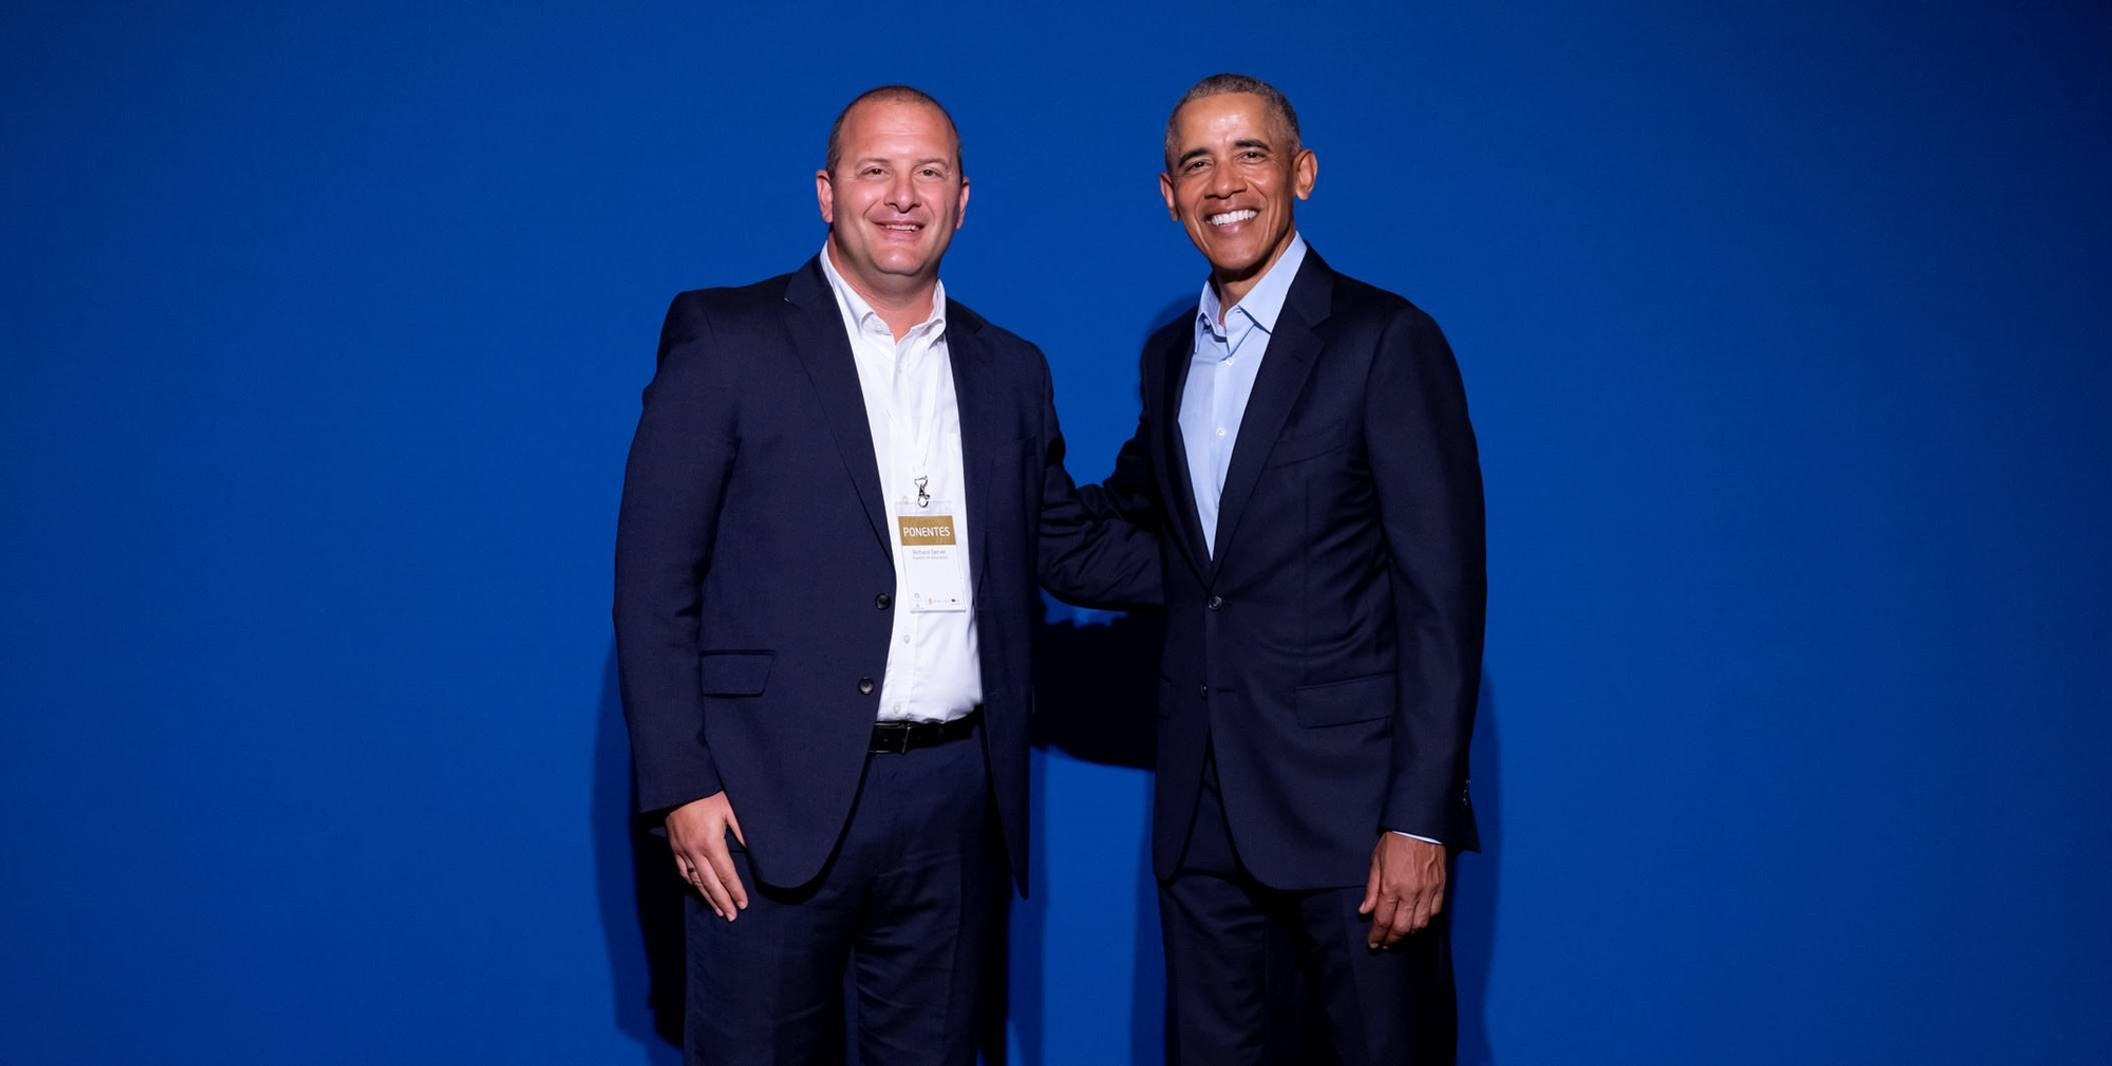 Richard Gerver and Barack Obama